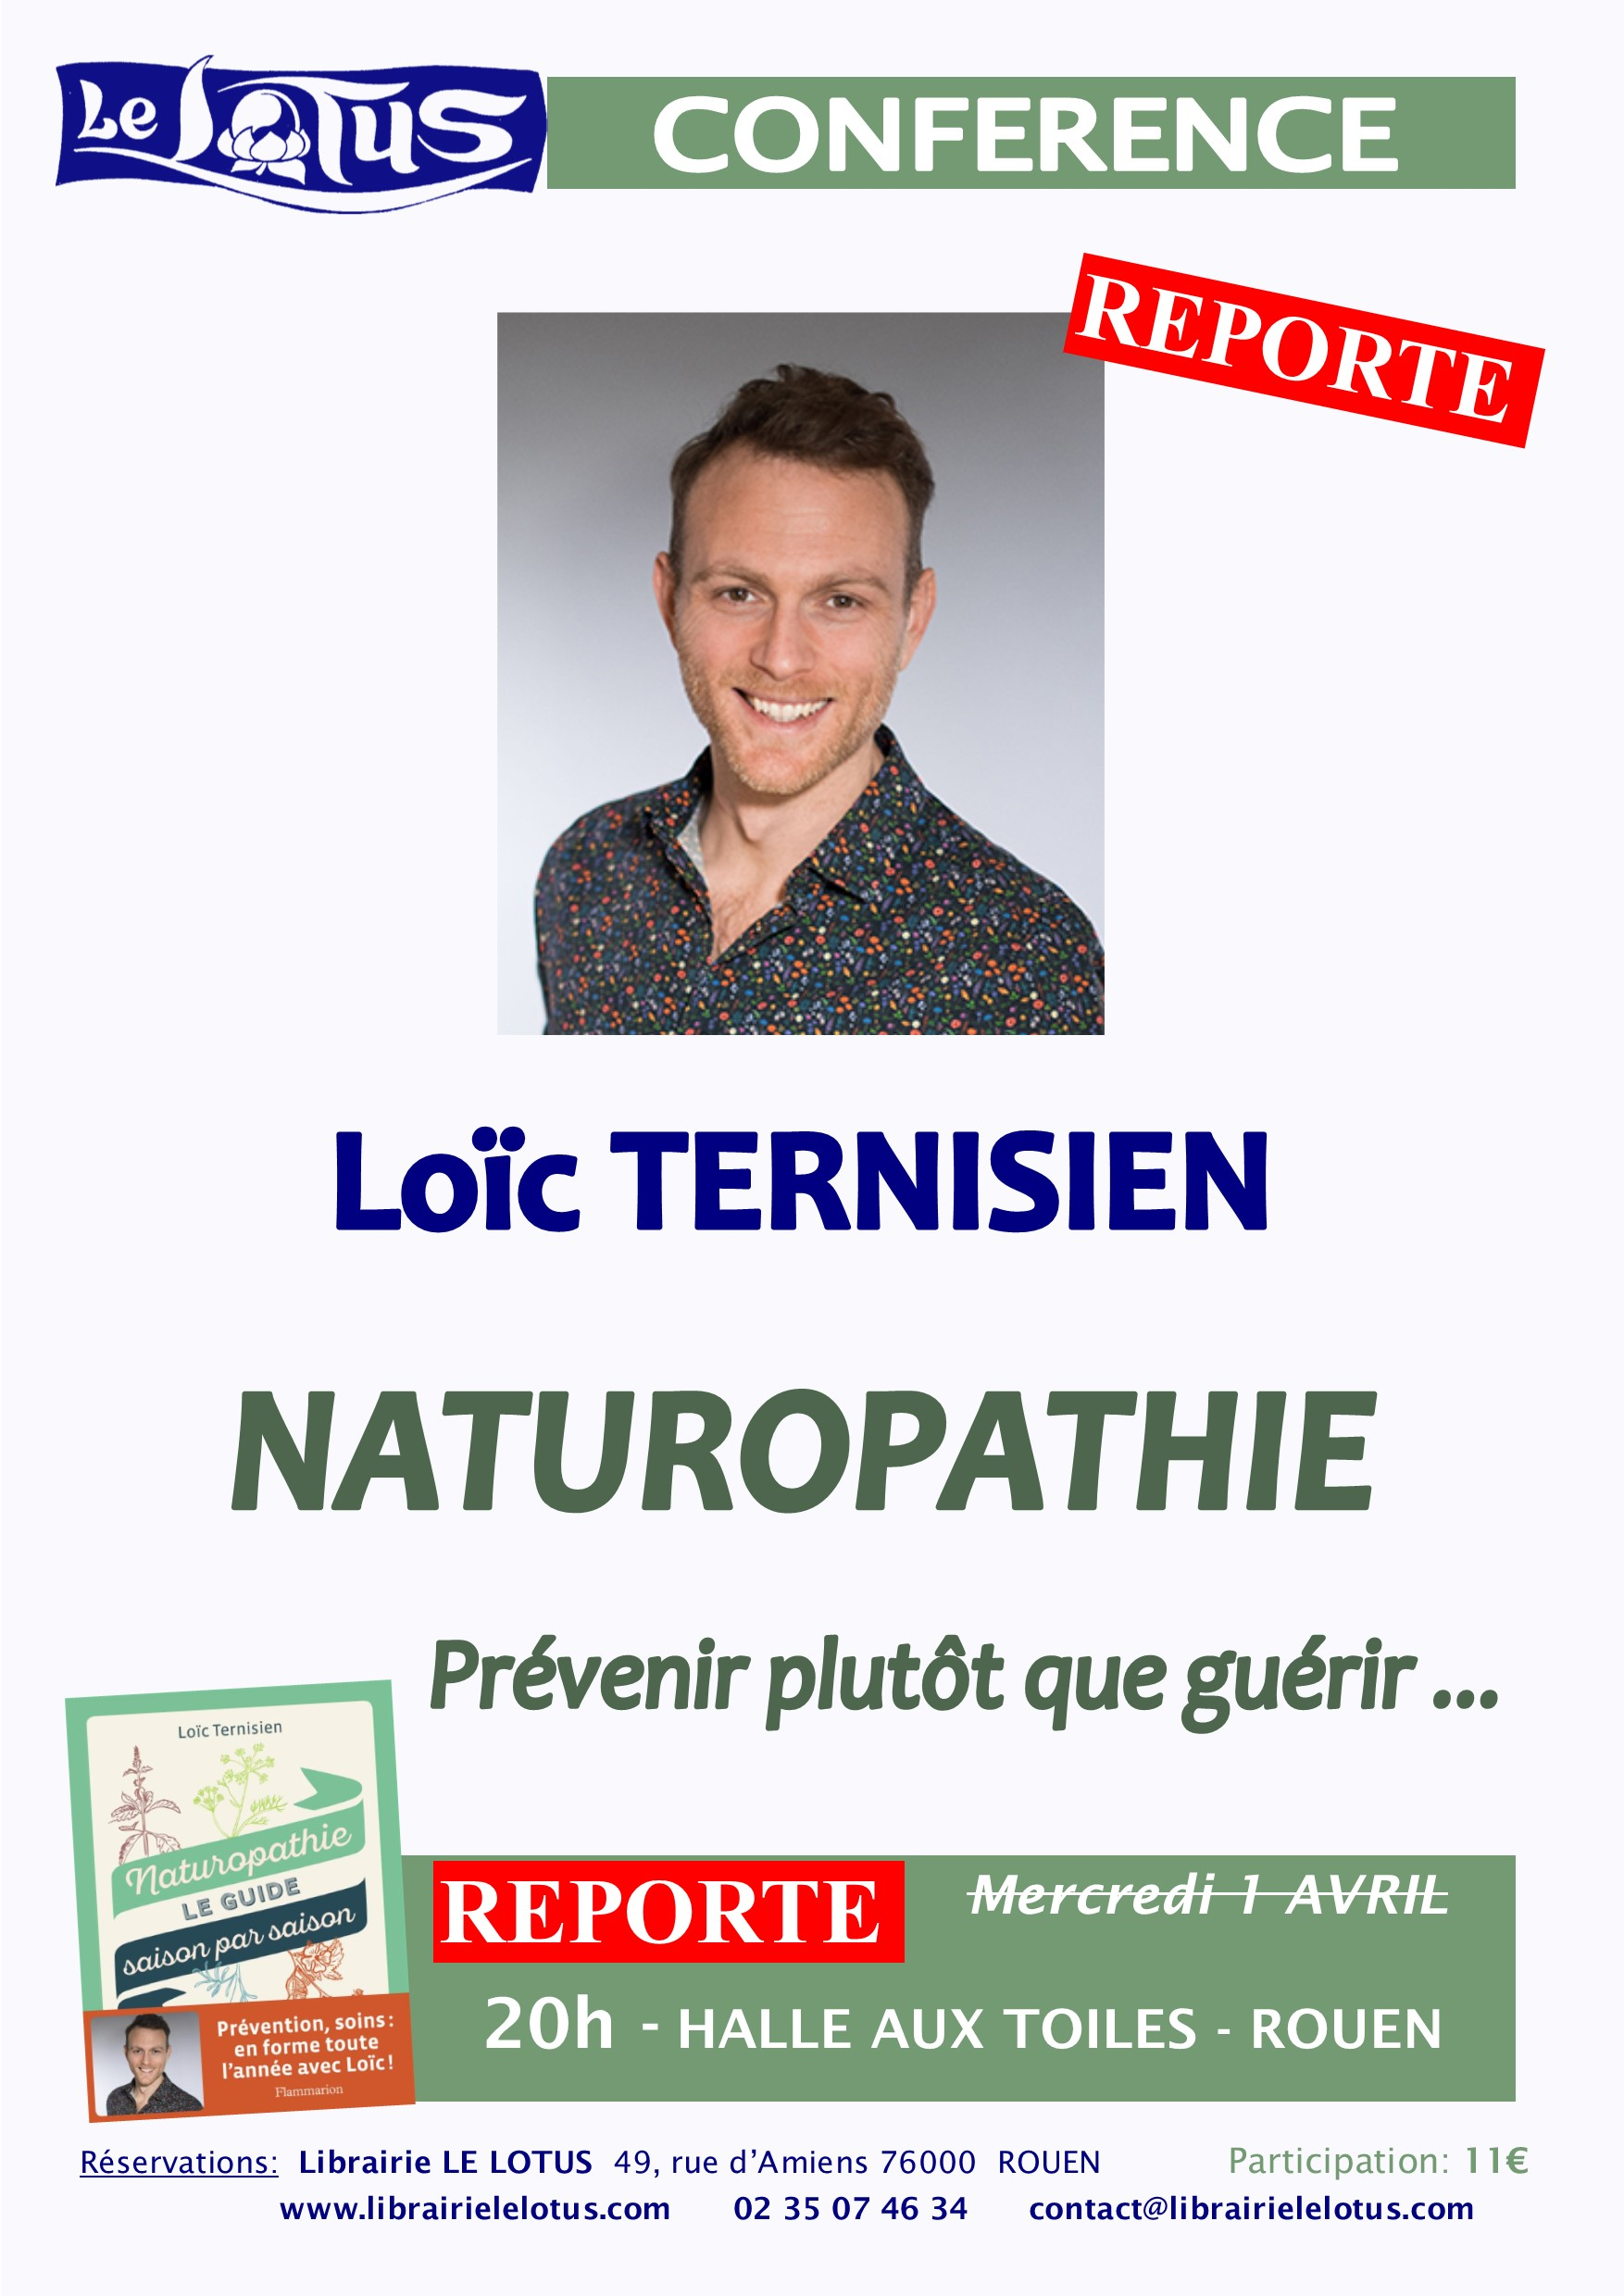 CONFERENCE - LOIC TERNISIEN - NATUROPATHIE